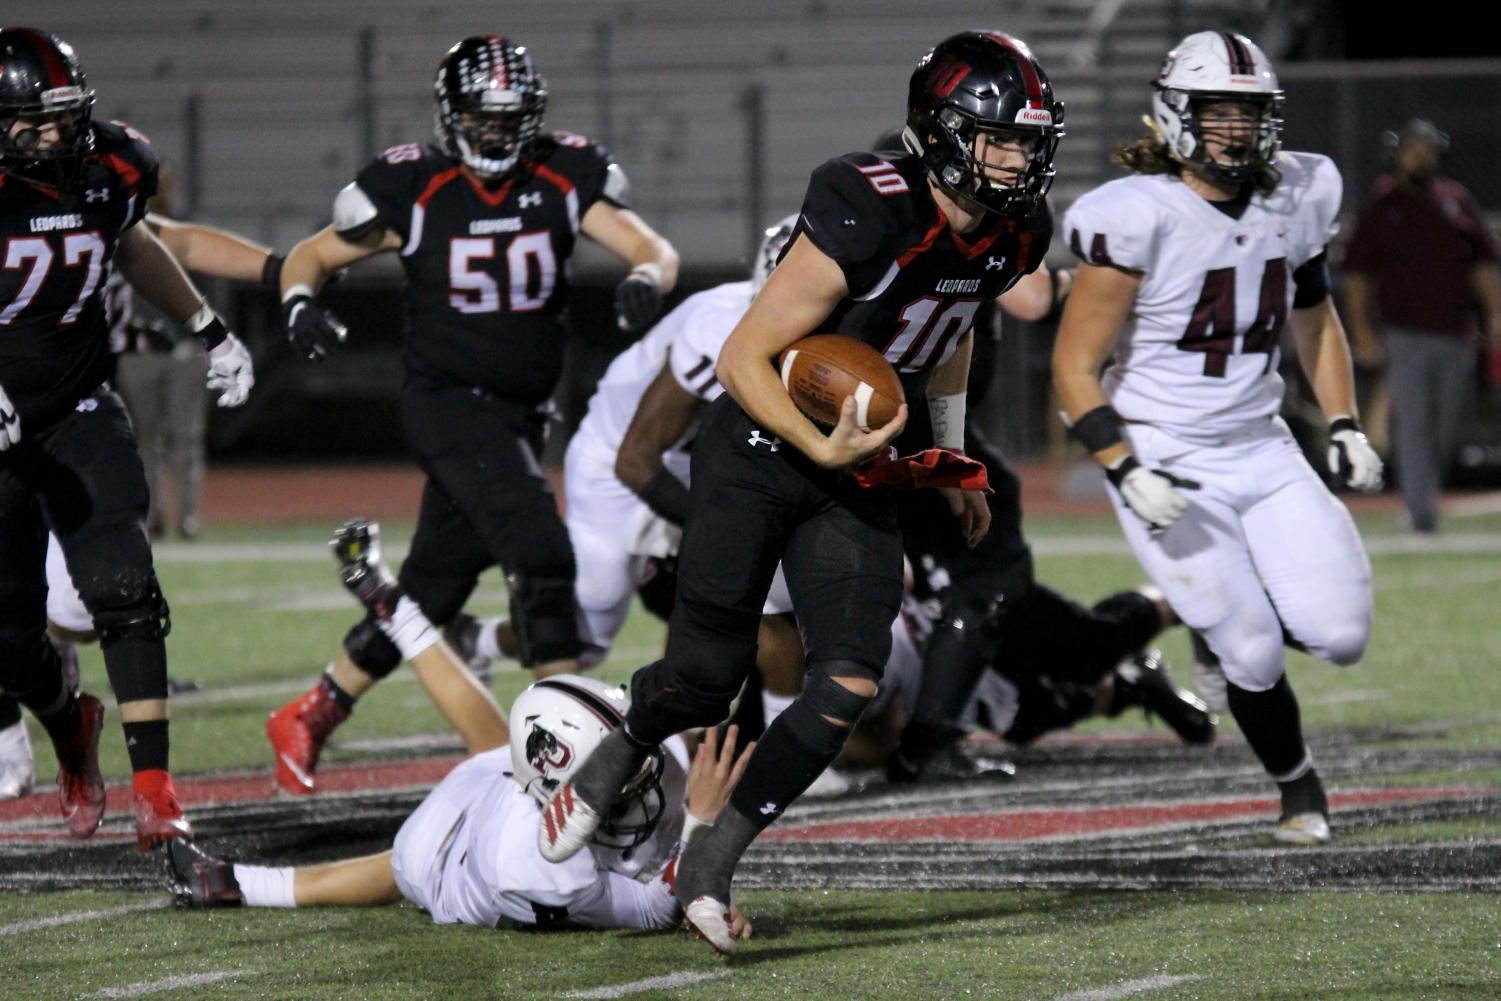 Junior quarterback Ralph Rucker (10) scampers across midfield after escaping the passer's pocket. Rucker leads the Leopards this season in both passing and rushing yards.